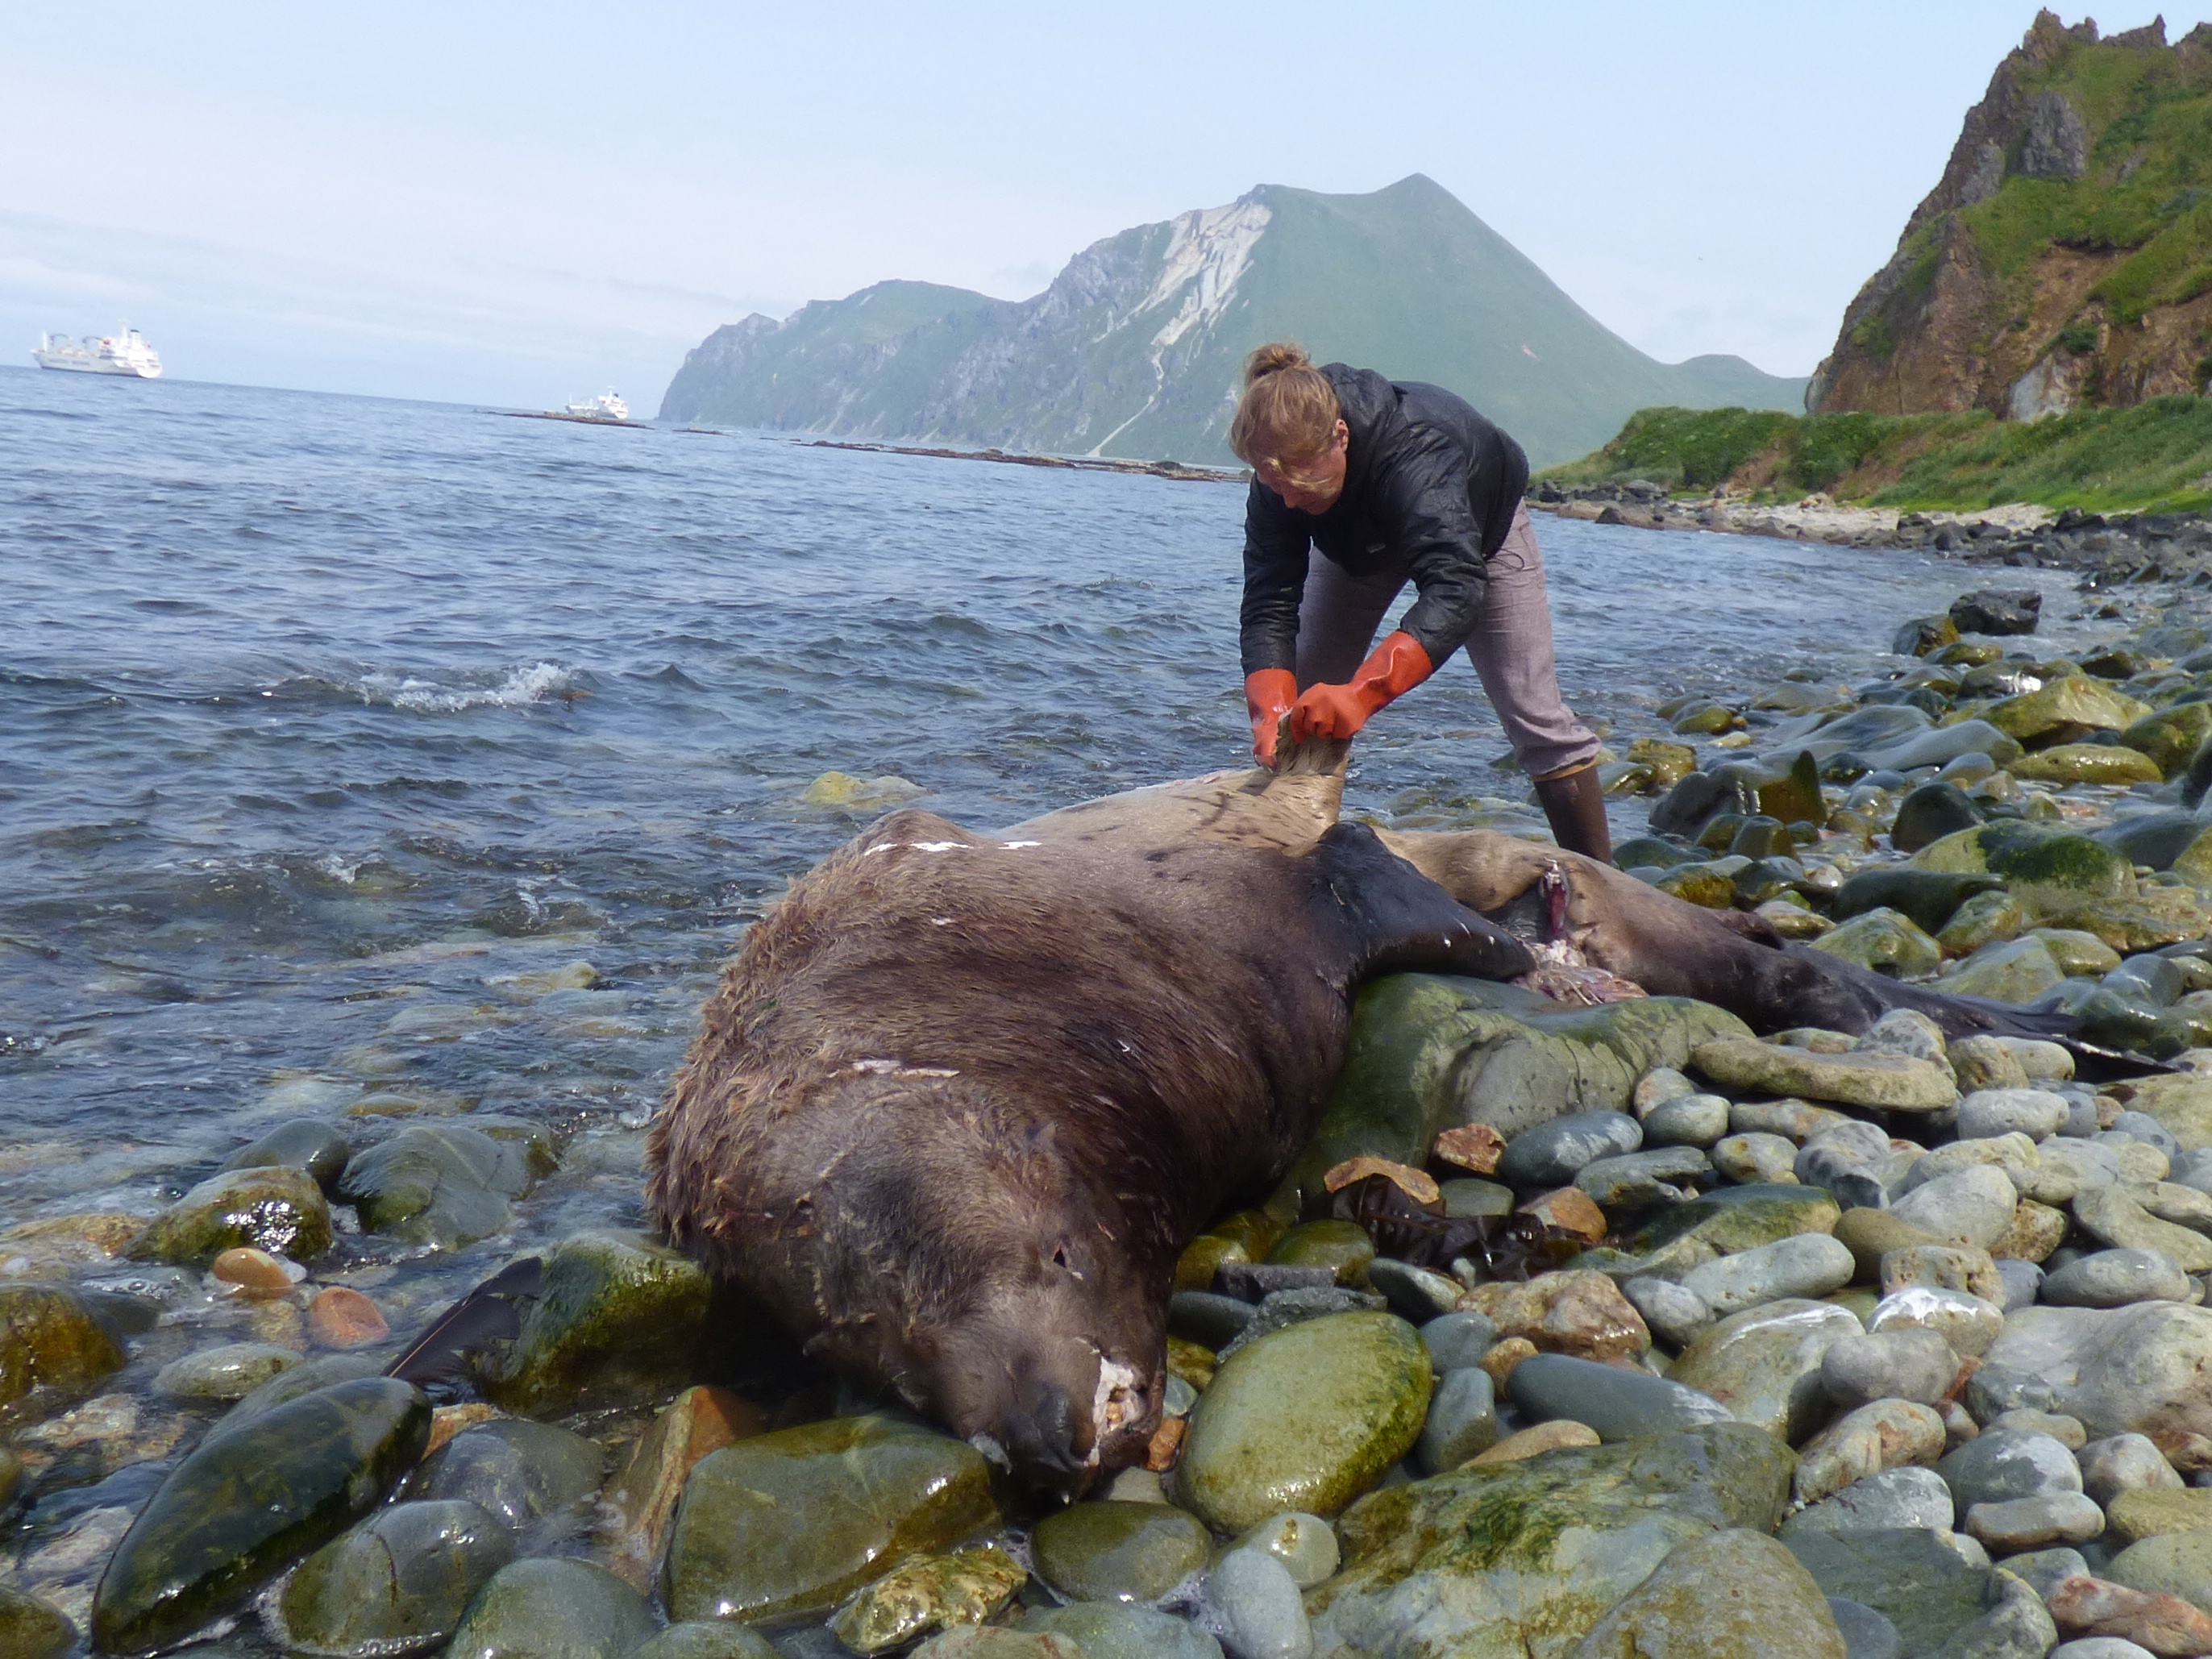 Dead Fish, Wildlife In Aleutians May Be Victims Of Toxic ...